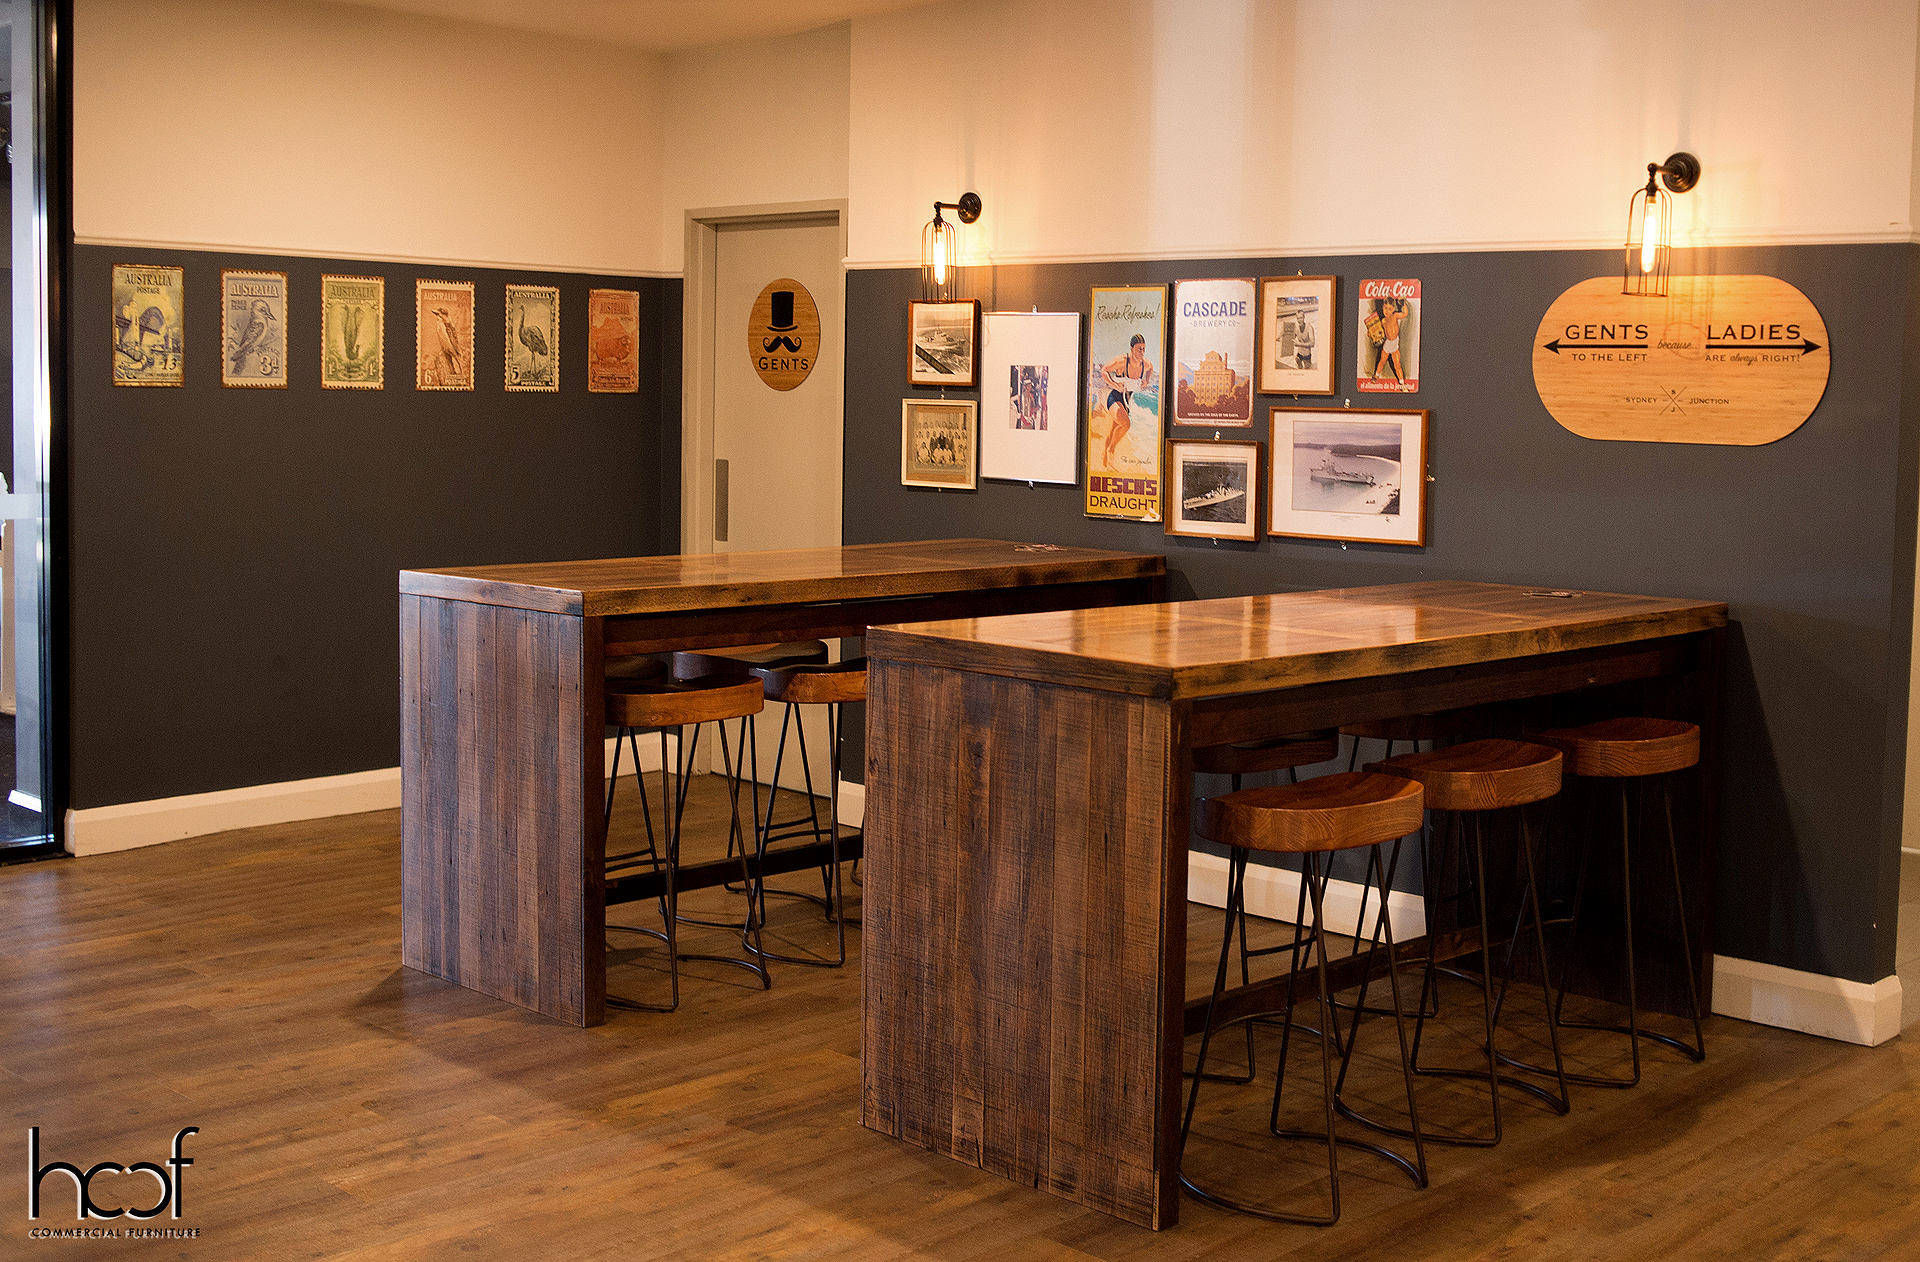 junction hotel Book now with choice hotels in junction, tx with great amenities and rooms for every budget, compare and book your junction hotel today.